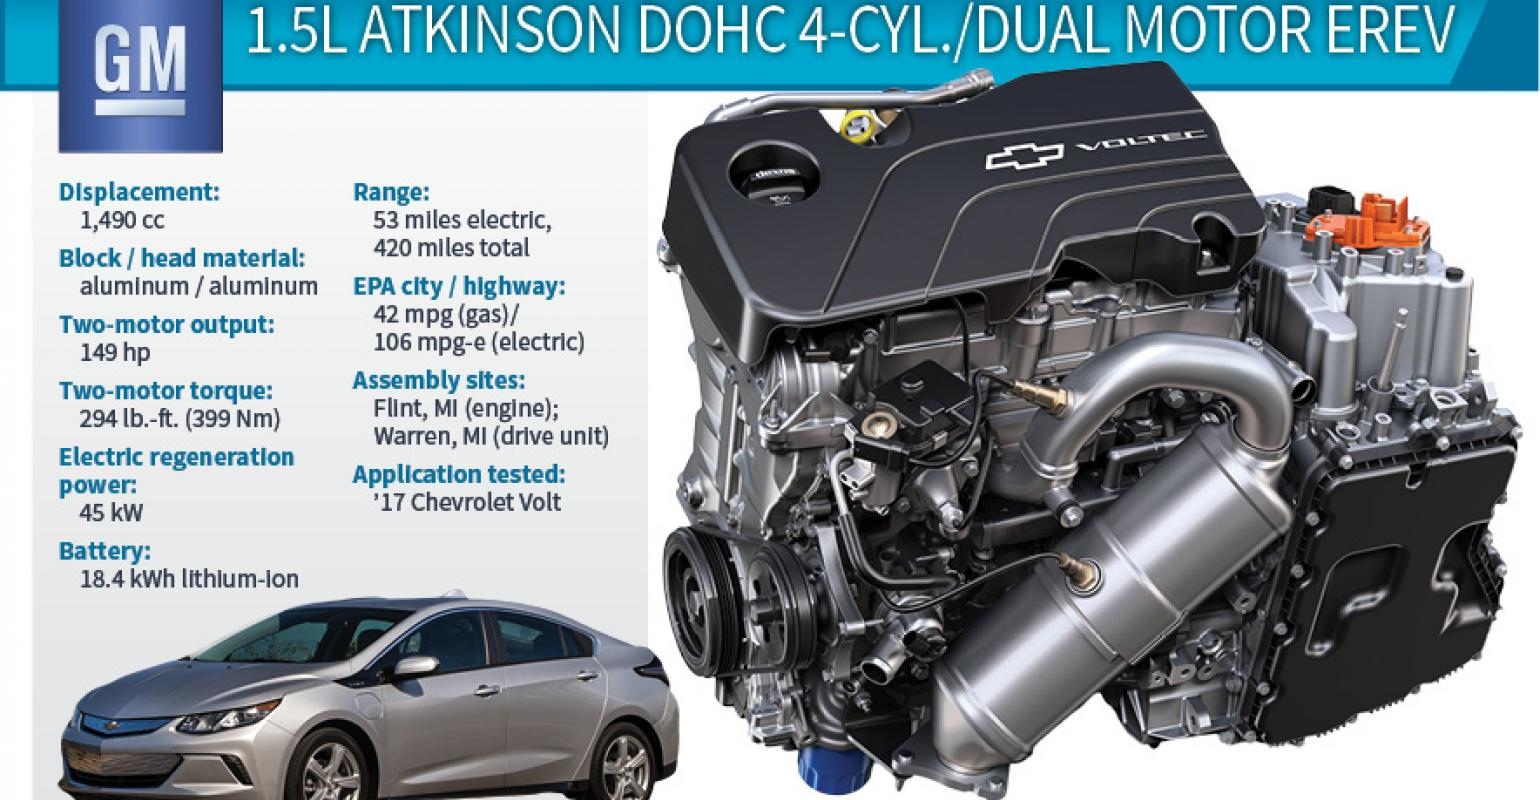 2017 wards 10 best engines winner chevrolet volt 1 5l 4 cyl dual motor erev wardsauto chevrolet volt 1 5l 4 cyl dual motor